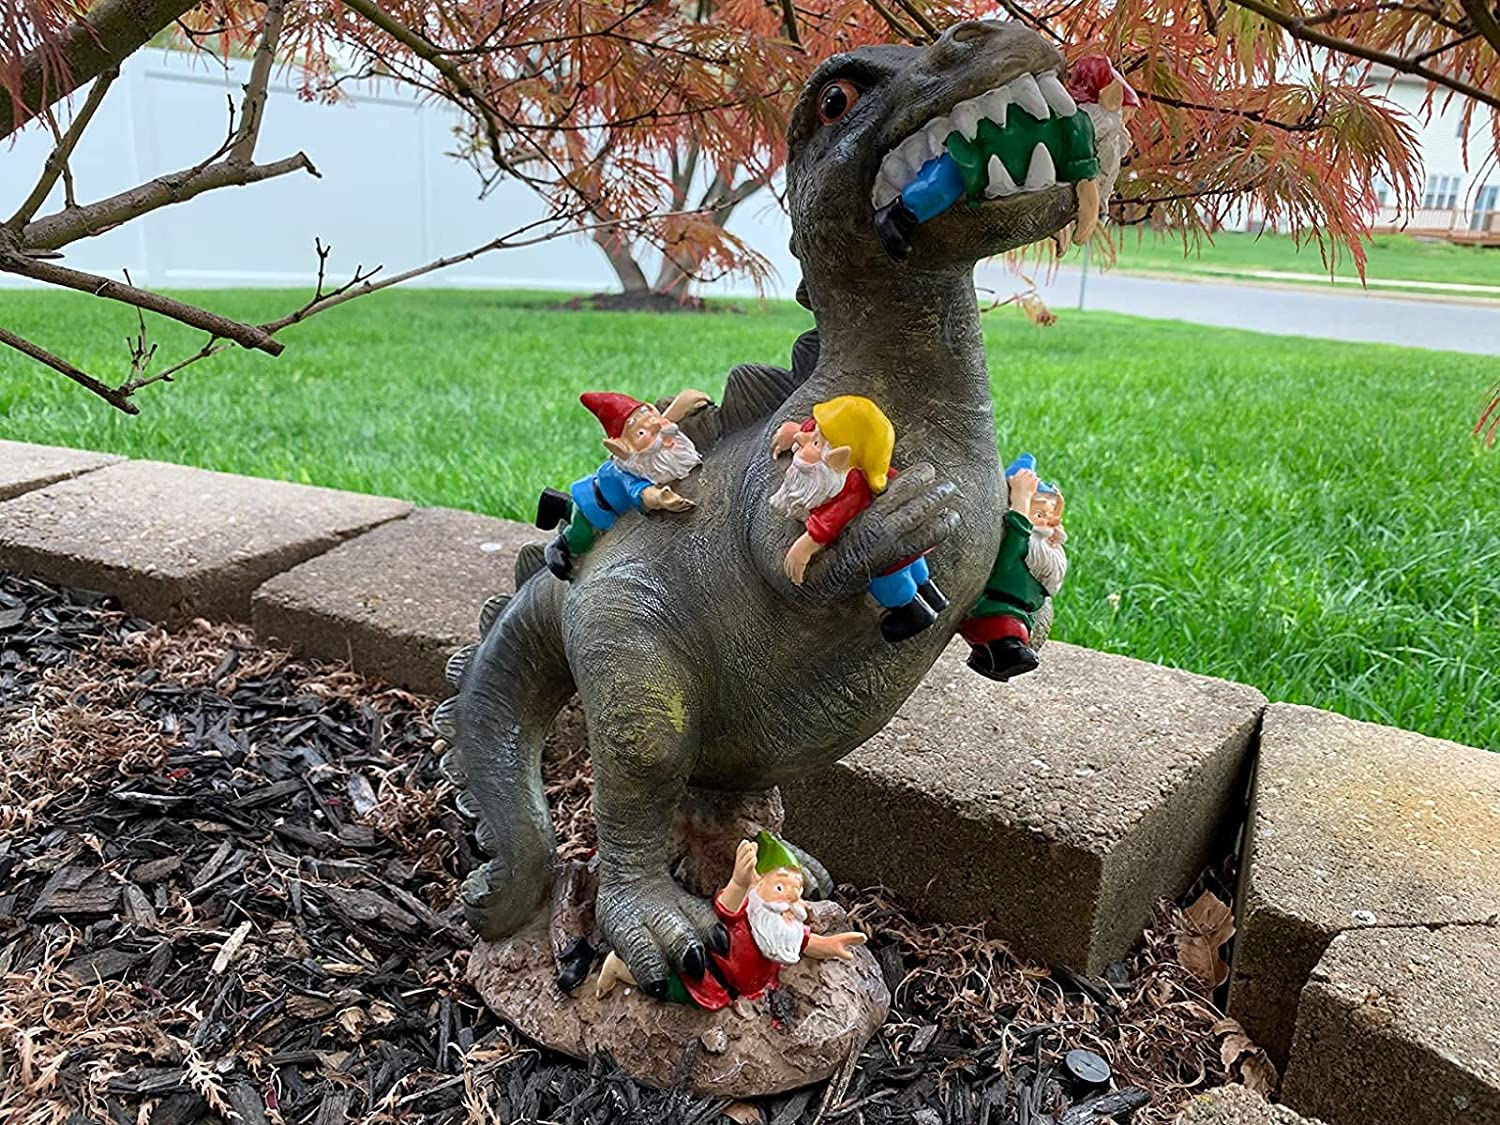 Garden Dinosaur Eating Gnomes Massacre Statues Decor,Sturdy Funny Garden Ornaments for Outdoor Patio Lawn Yard